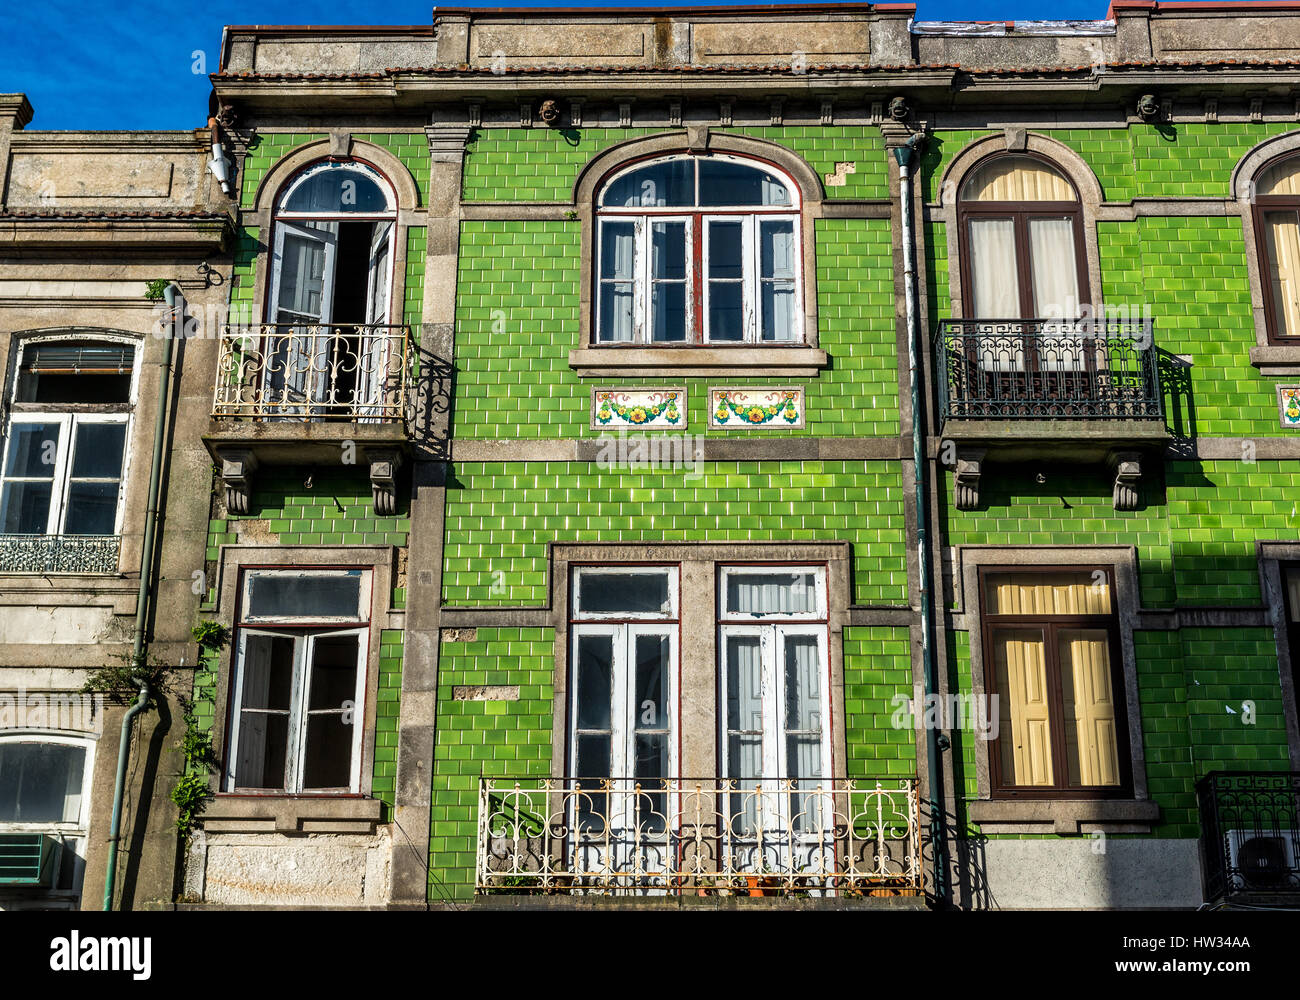 Green azulejo ceramic tiles on residential building in porto city green azulejo ceramic tiles on residential building in porto city on iberian peninsula second largest city in portugal dailygadgetfo Choice Image